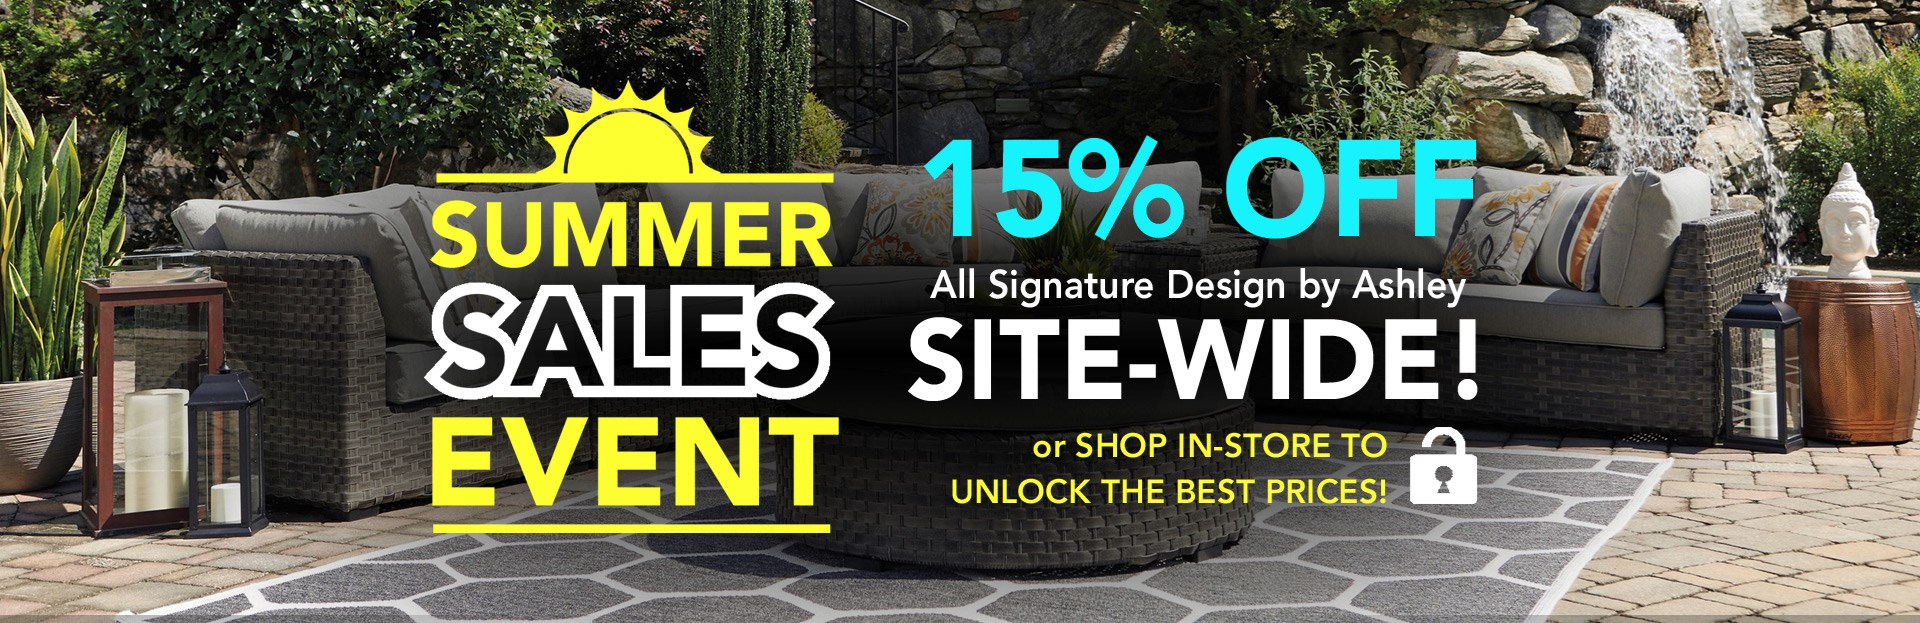 Summer Sales Event 15% off Ashley